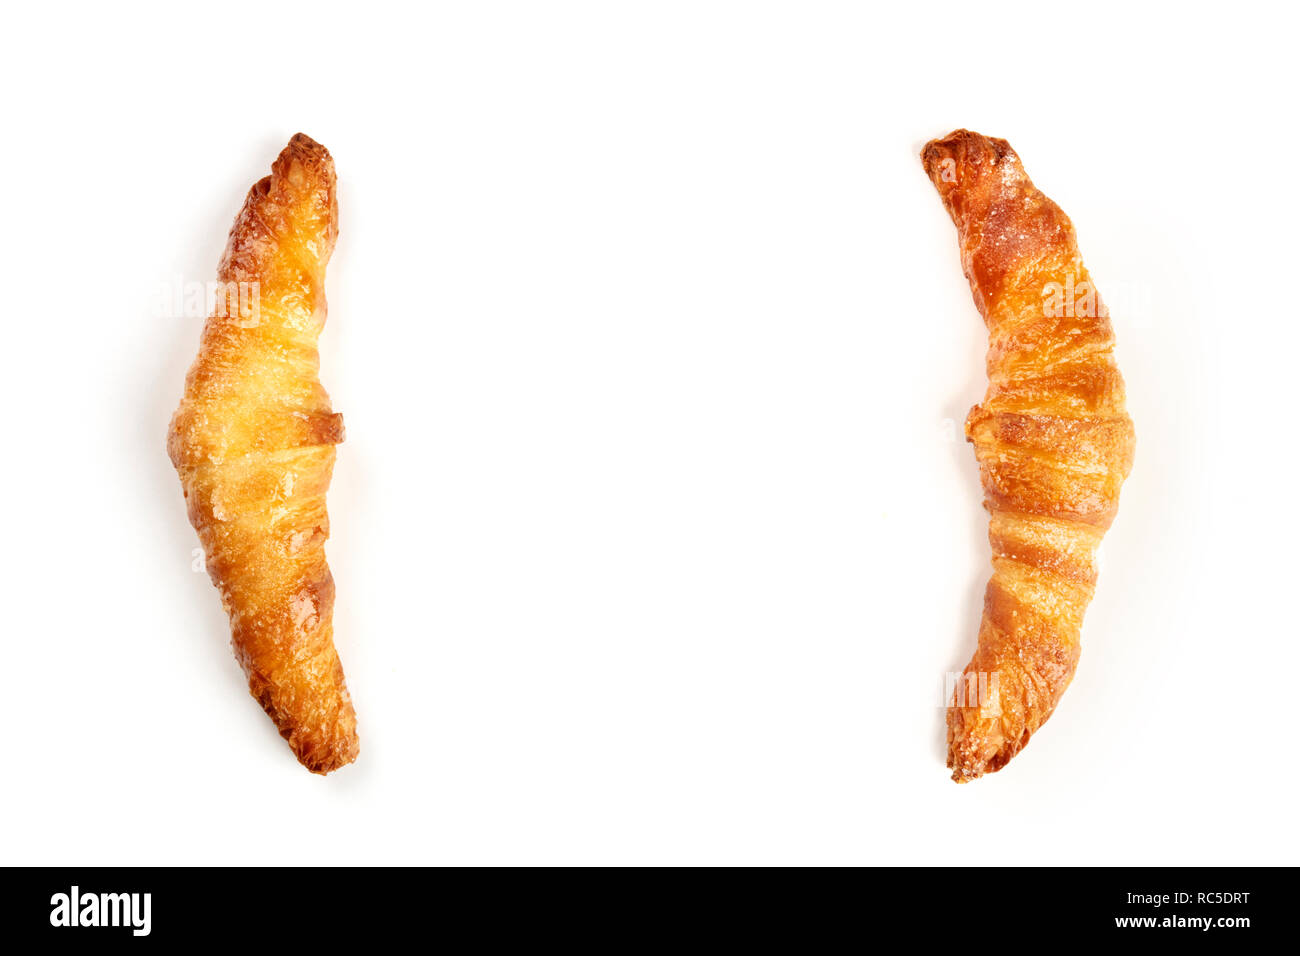 Two croissants on a white background, shot from the top, forming a frame for copy space - Stock Image